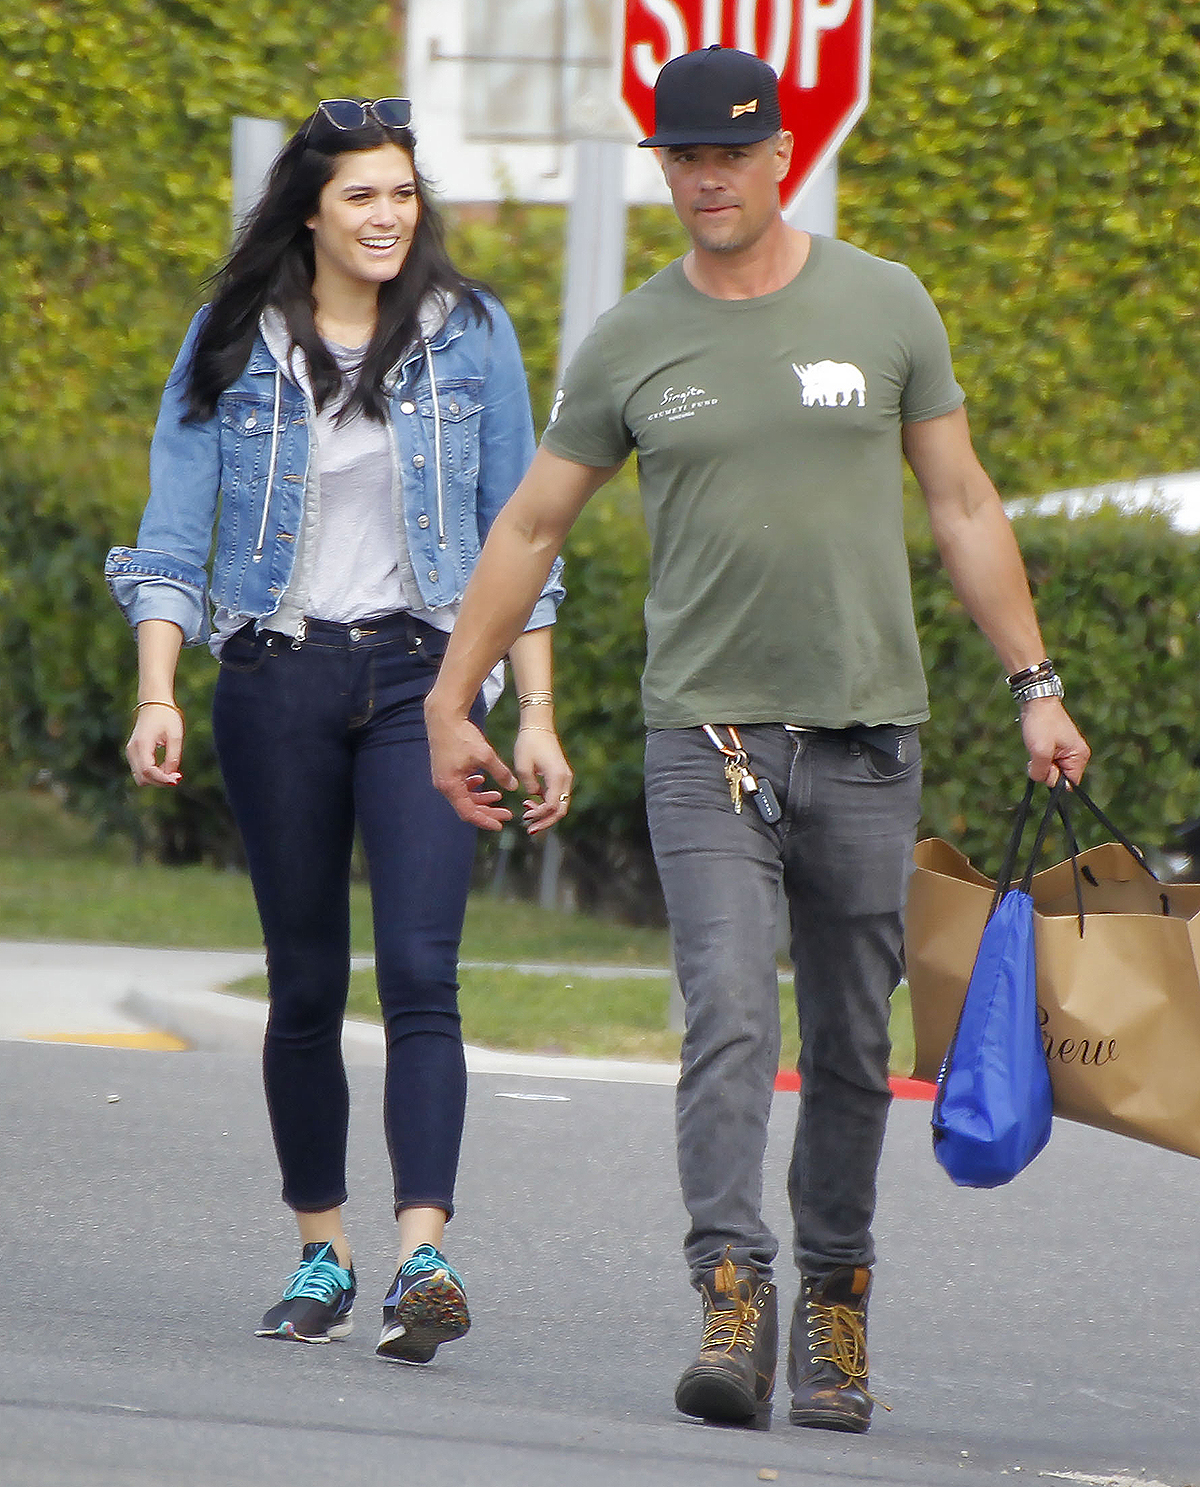 02/25/2020 EXCLUSIVE: Josh Duhamel and girlfriend Audra Mari are spotted holding hands during a rare outing in Los Angeles. Duhamel wore a trucker cap, green t-shirt, black jeans, and brown work boots.